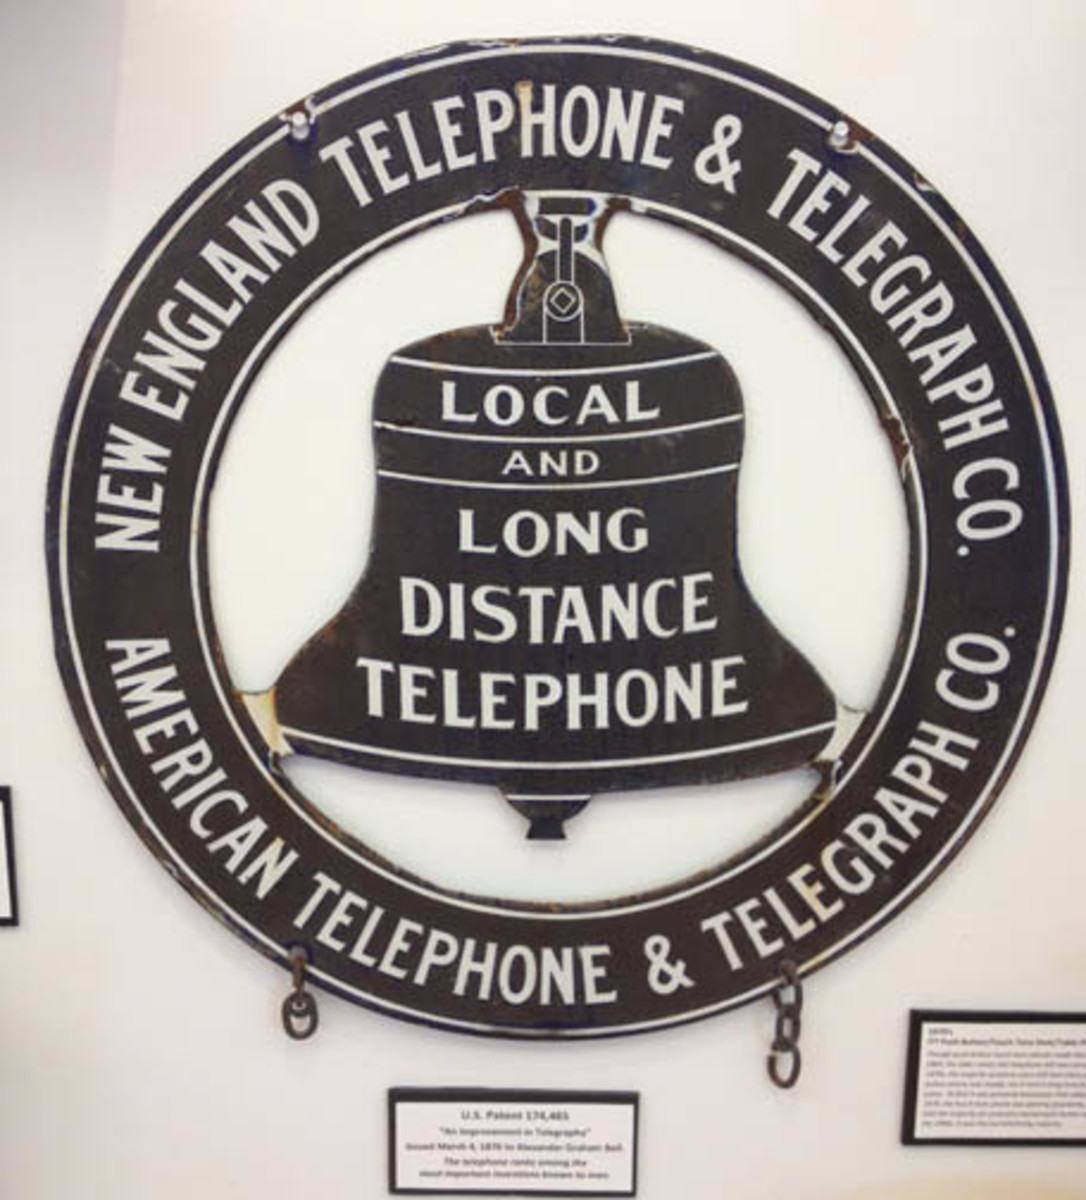 Individuals interested in business and marketing would appreciate the efforts taken by the telephone industry. The various logos were used everywhere and on everything, from signs to dinnerware.